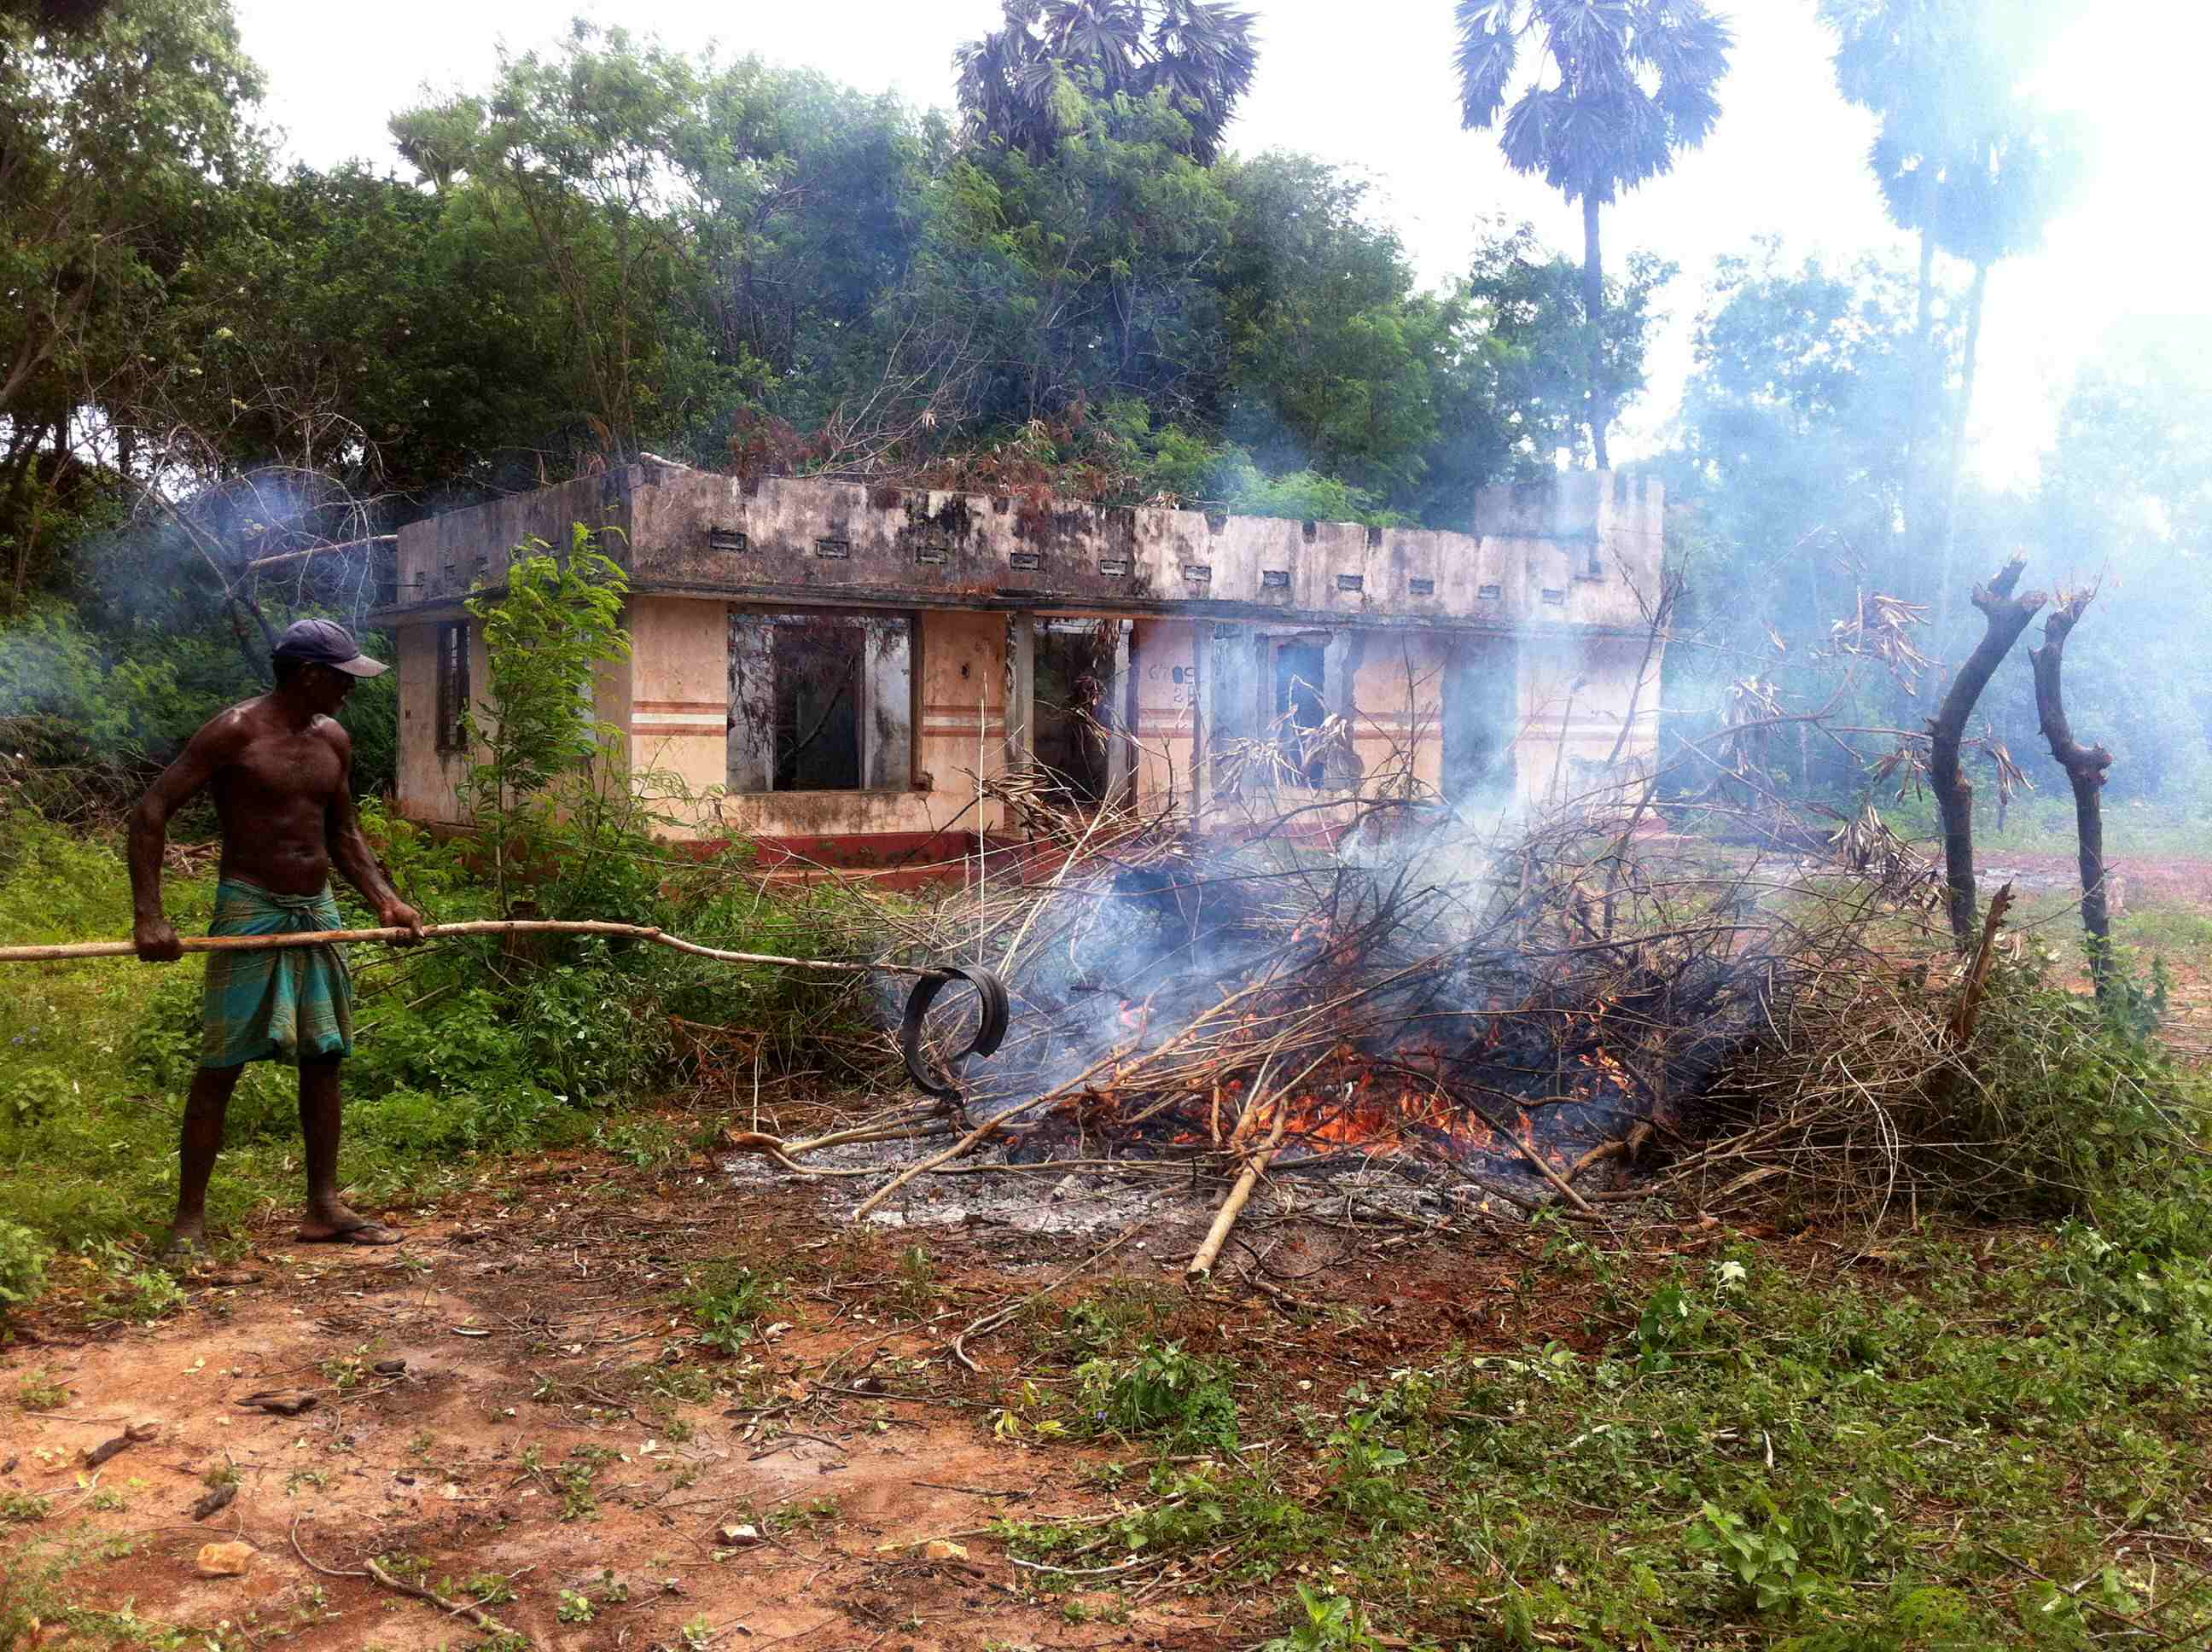 A man burns debris in front of a destroyed house on land returned to civilians by the military in Tellipallai, northern Sri Lanka